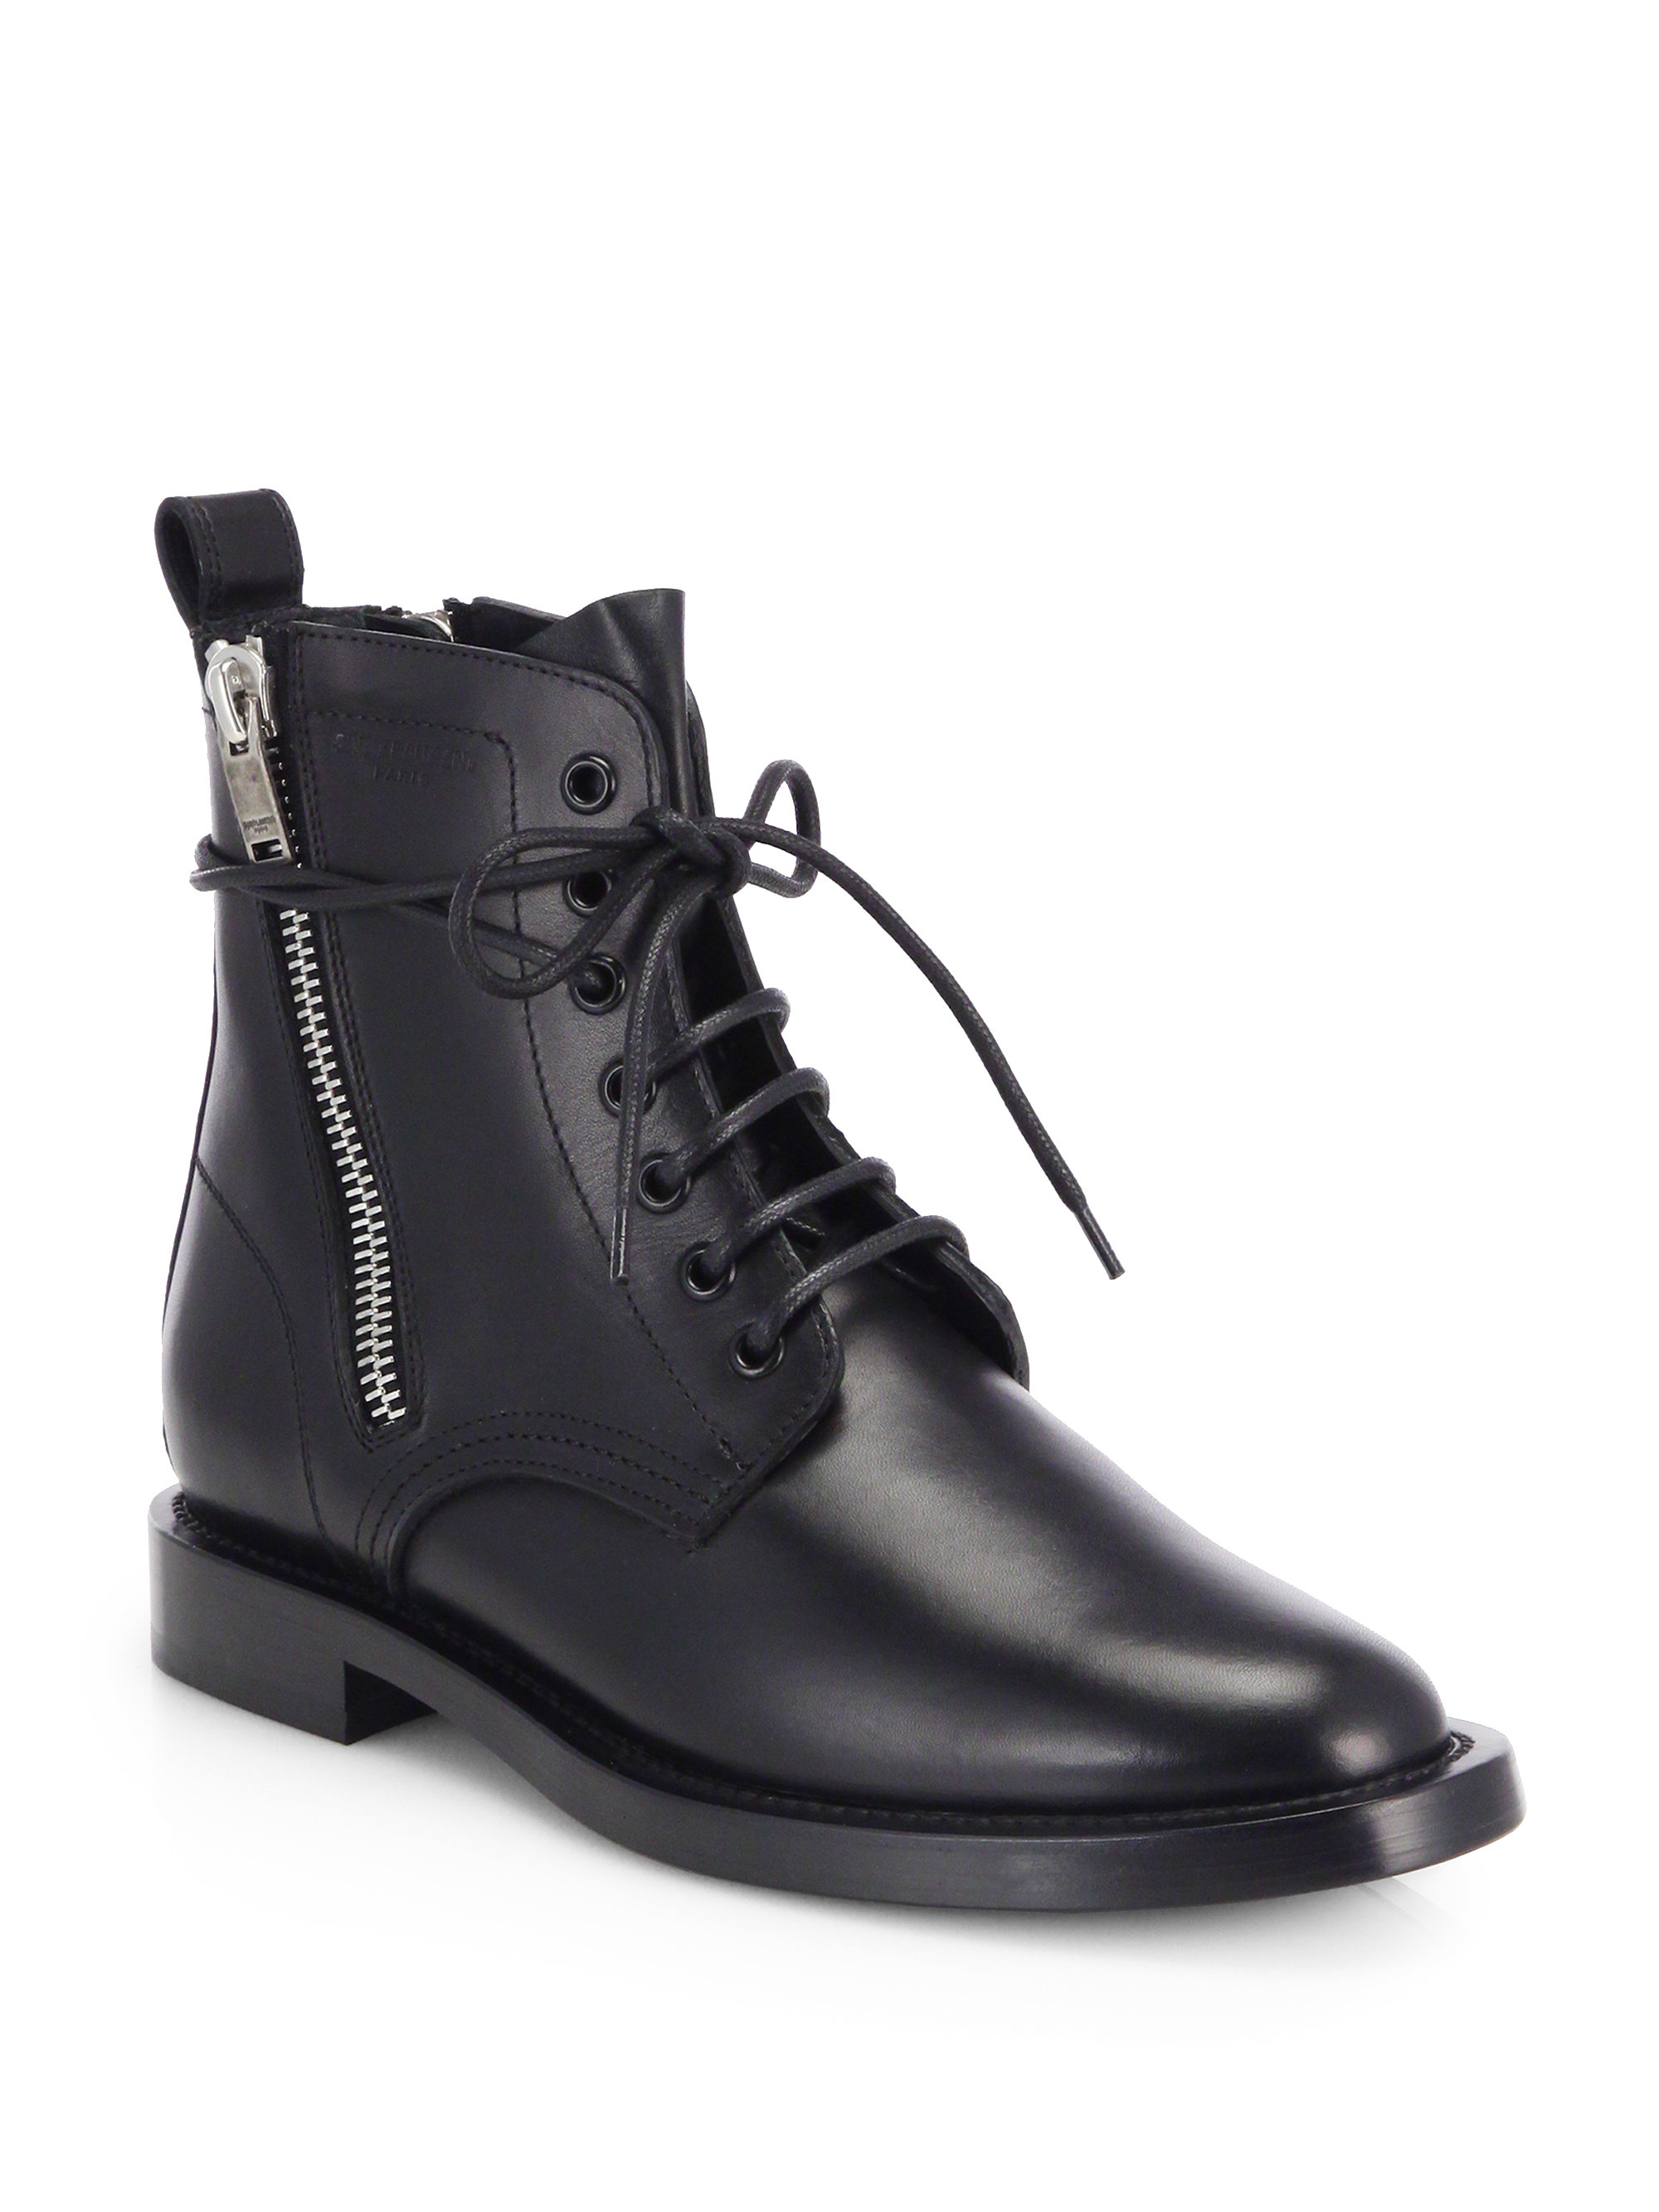 cheapest price sale online Saint Laurent Black Suede Army Ranger Boots cheap brand new unisex 7VF47U